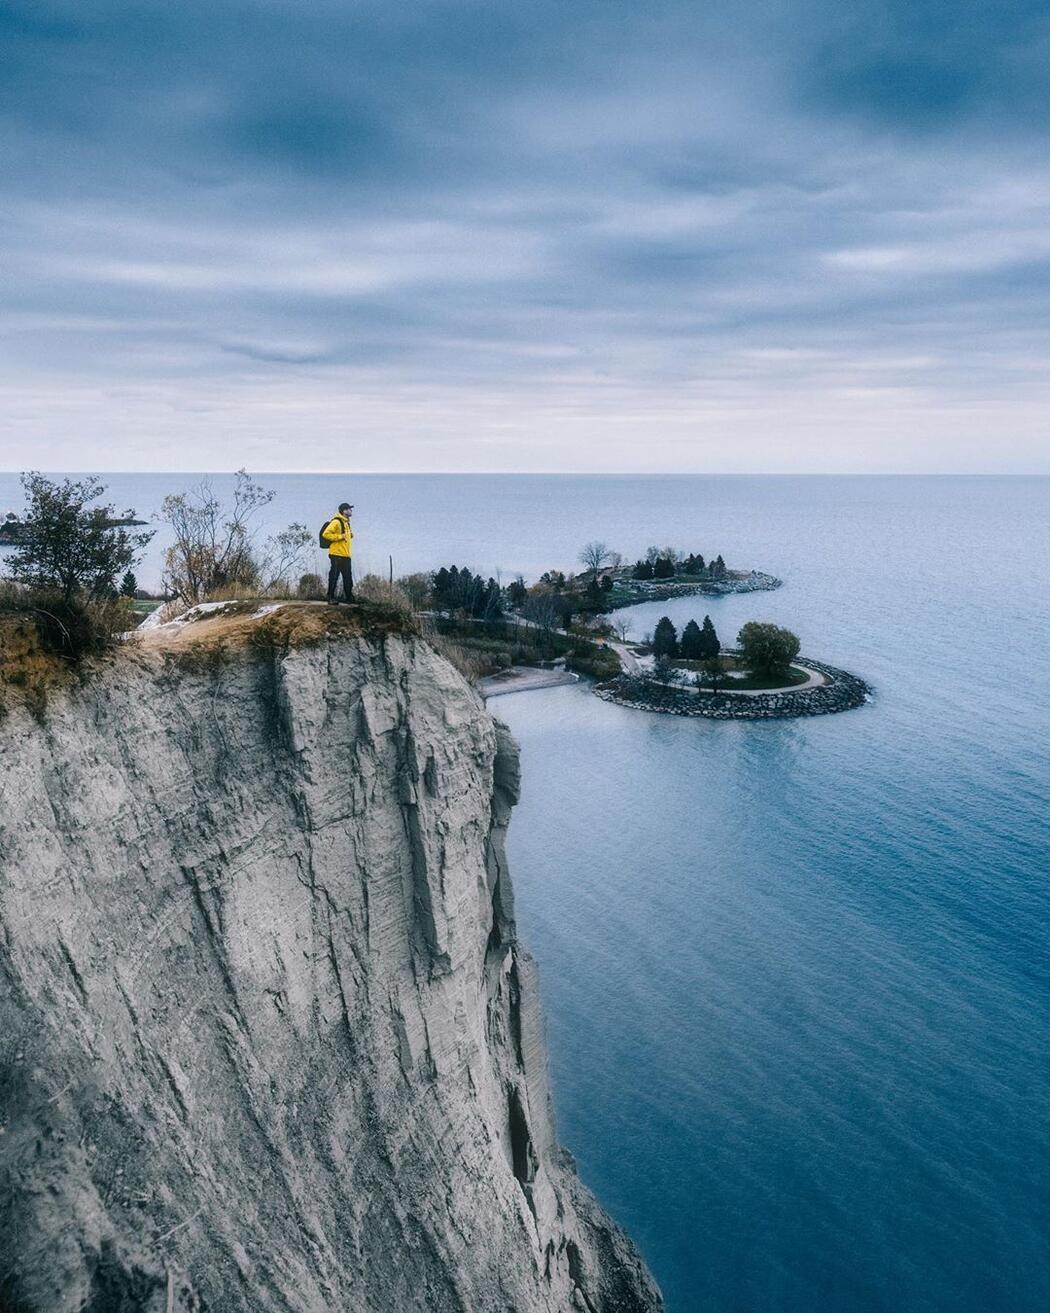 Person standing near edge of tall cliff overlooking Lake Ontario.